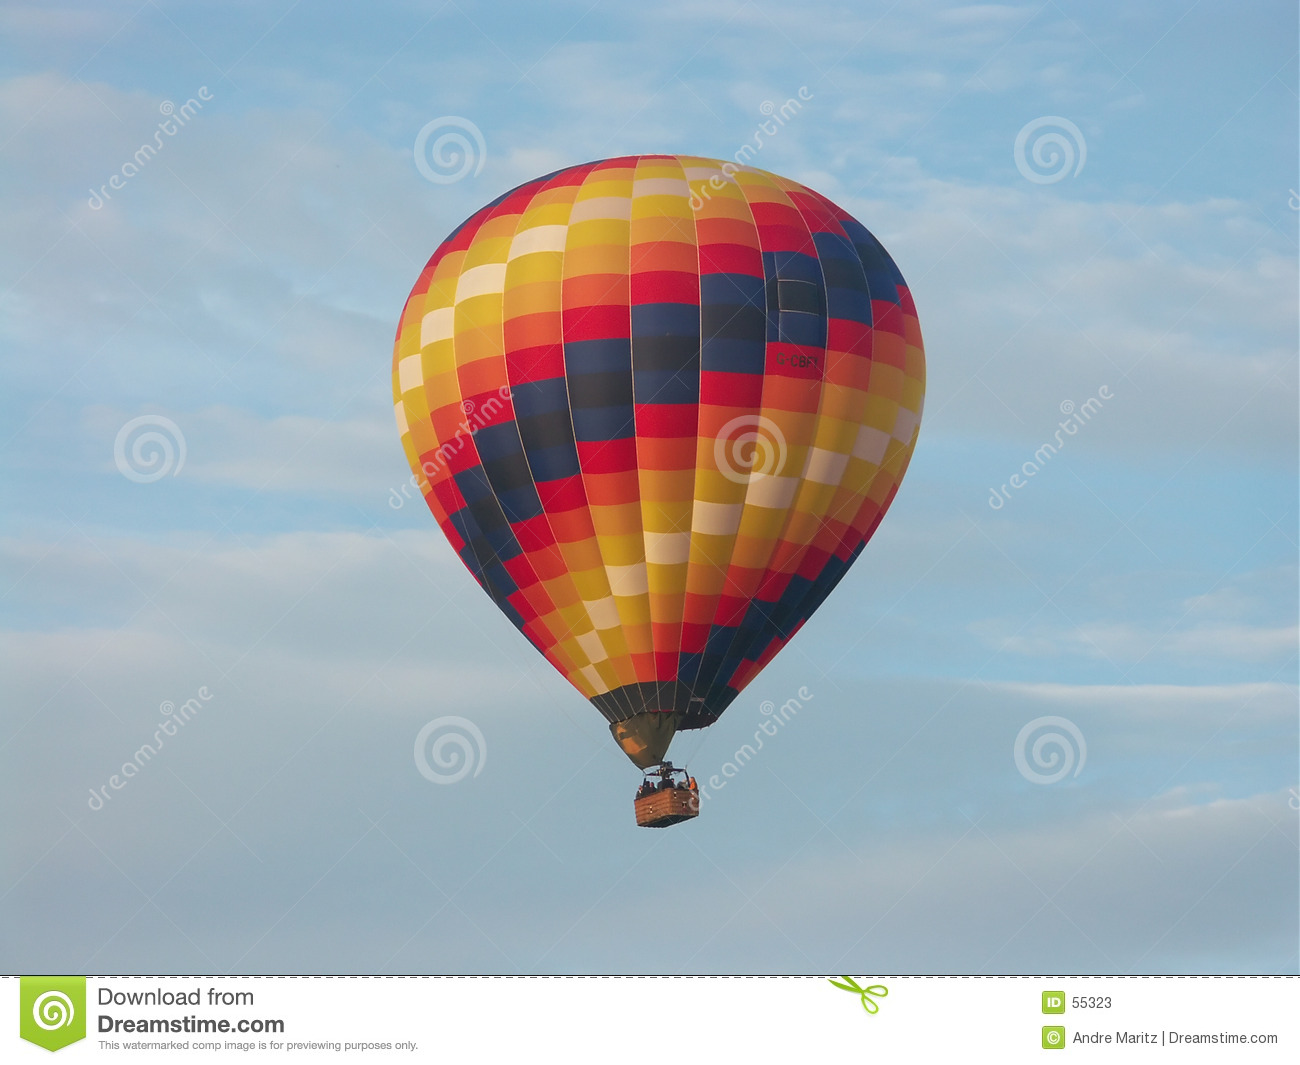 Download Ballon à air chaud image stock. Image du voile, nuages, mouche - 55323